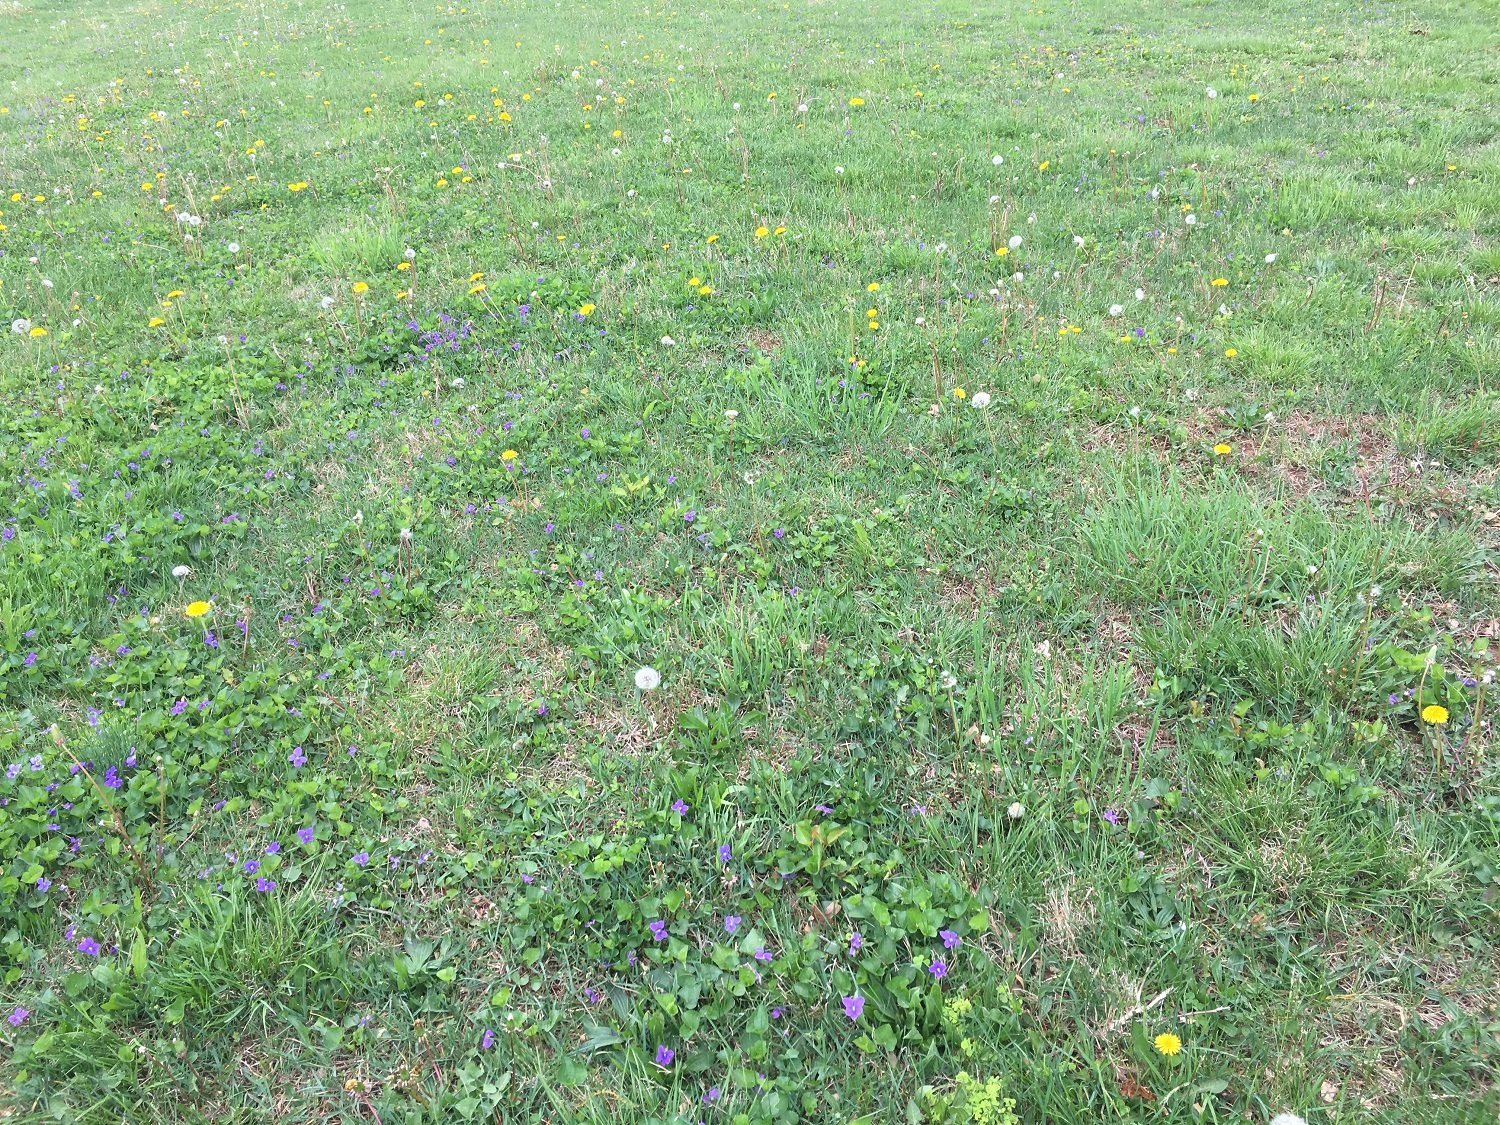 Lawn full of weeds